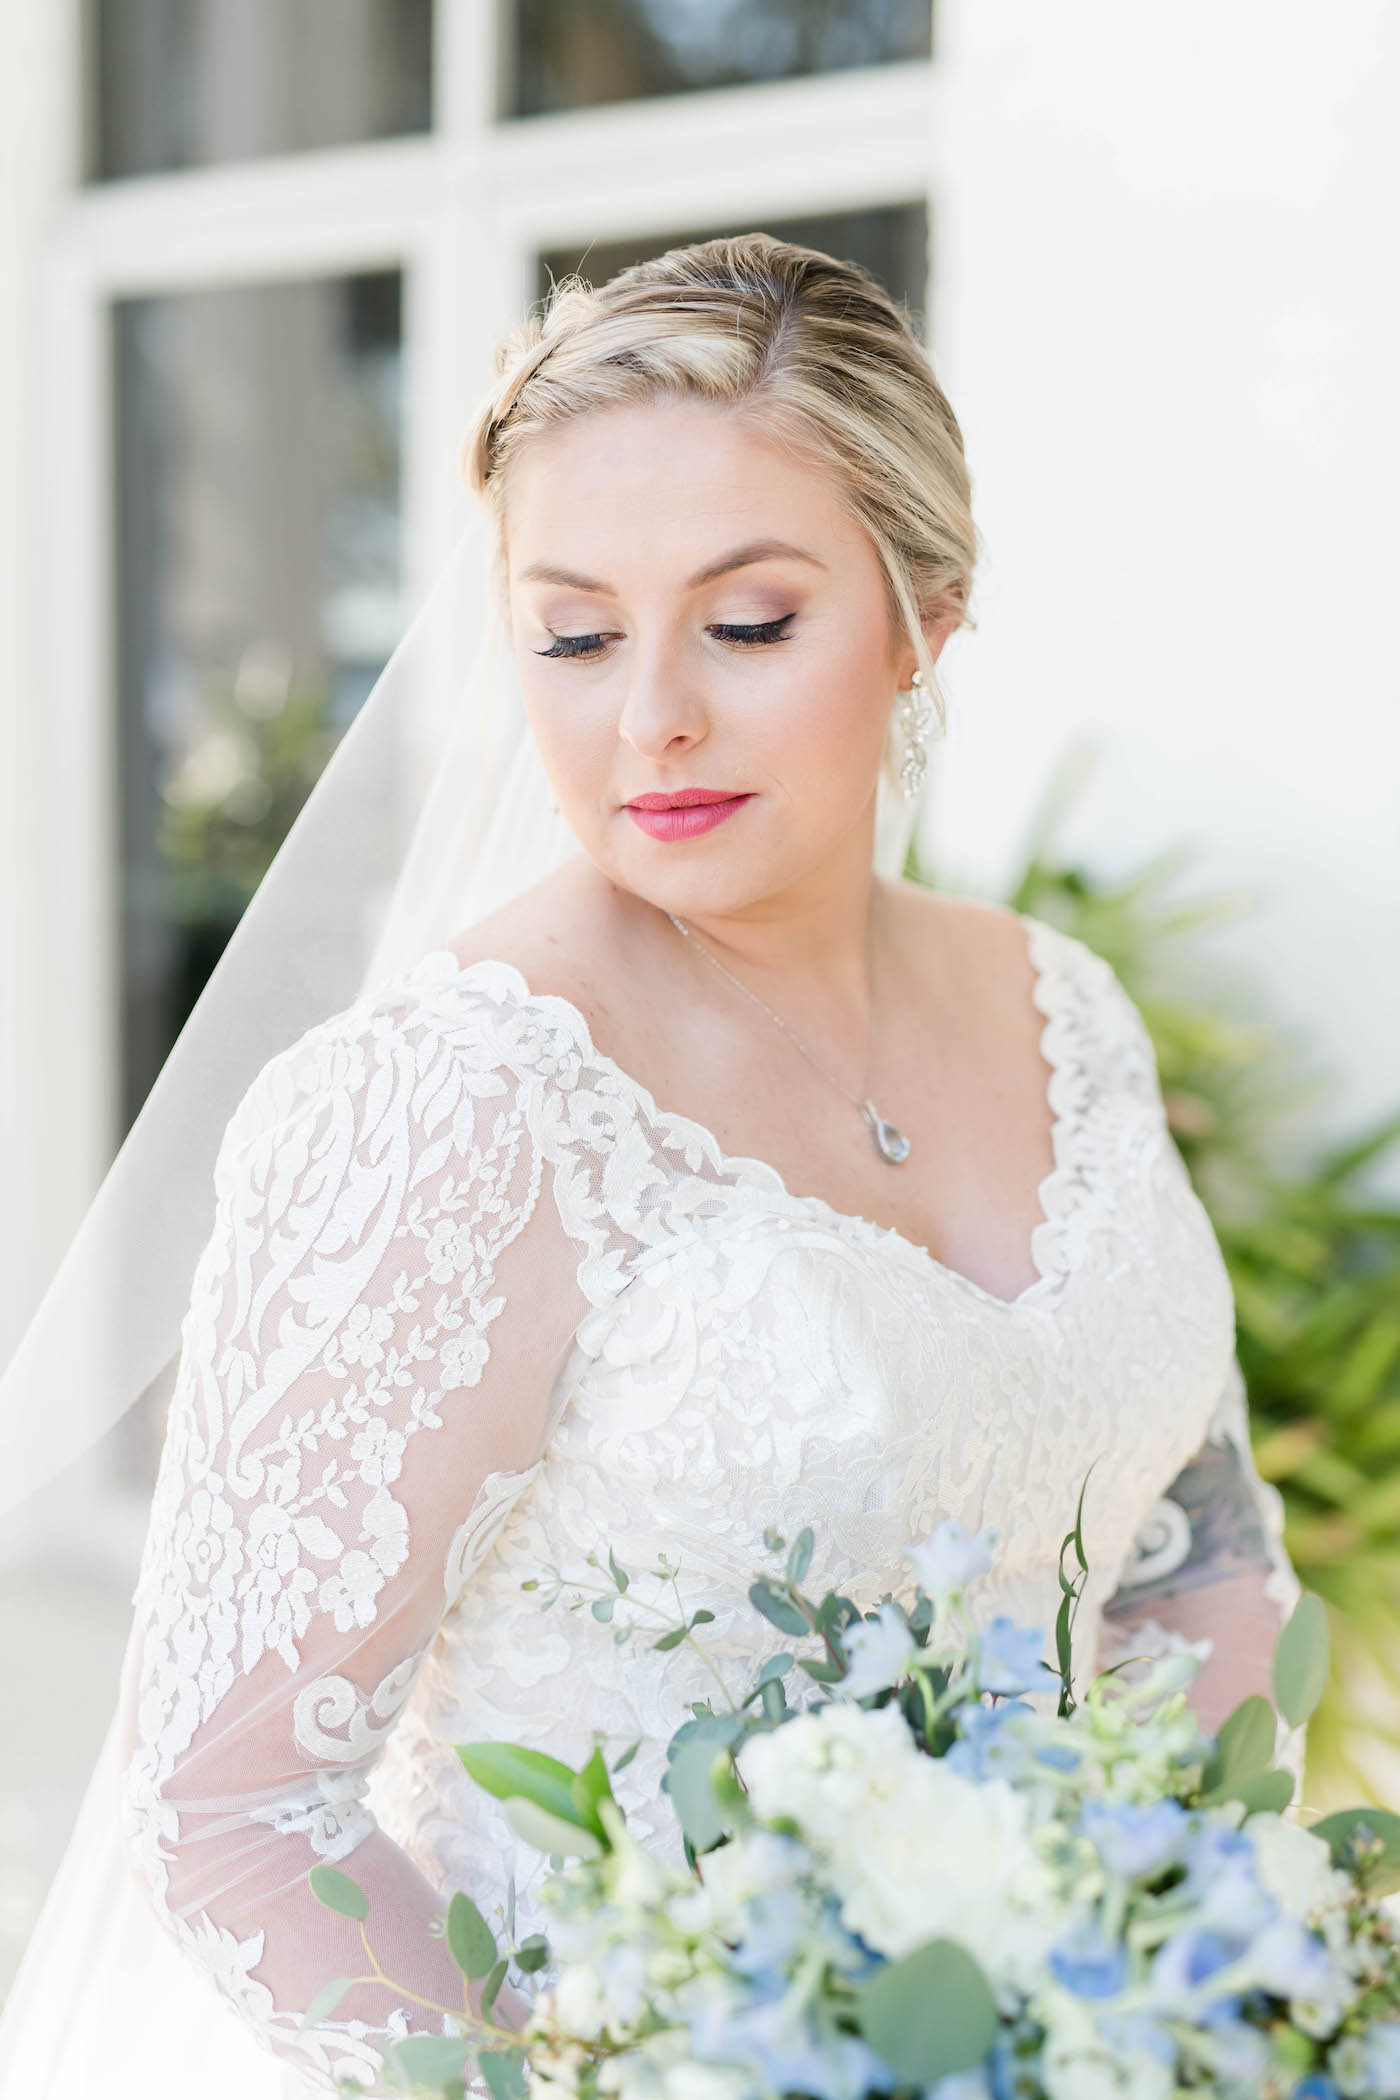 Ivory Lace Long Sleeve Bridal Gown With V Neck   Side Braid Bridal Hairstyle and Natural Wedding Makeup   Blue and White Bridal Bouquet   Femme Akoi Beauty Studio